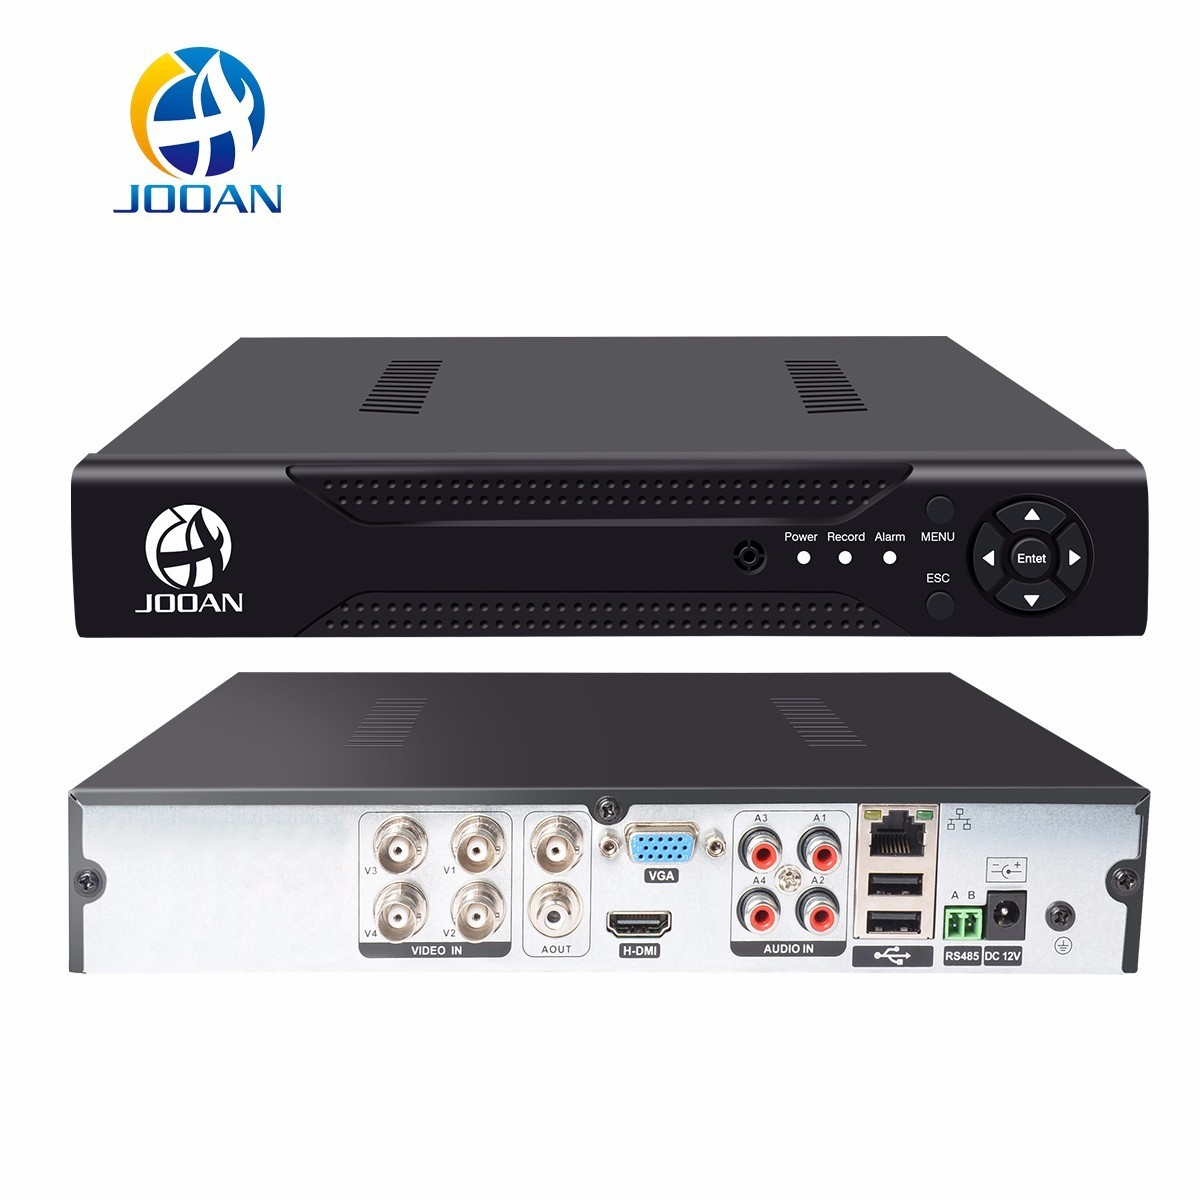 JOOAN 4CH CCTV DVR Security System 1080N H.264 HD-Output P2P Hybrid 5 in 1 Onvif IP Camera TVI CVI AHD Video Recorder smar hybrid 5 in 1 dvr 8ch 1080n ahd dvr home security h 264 video recorder onvif xmeye p2p network cctv dvr system